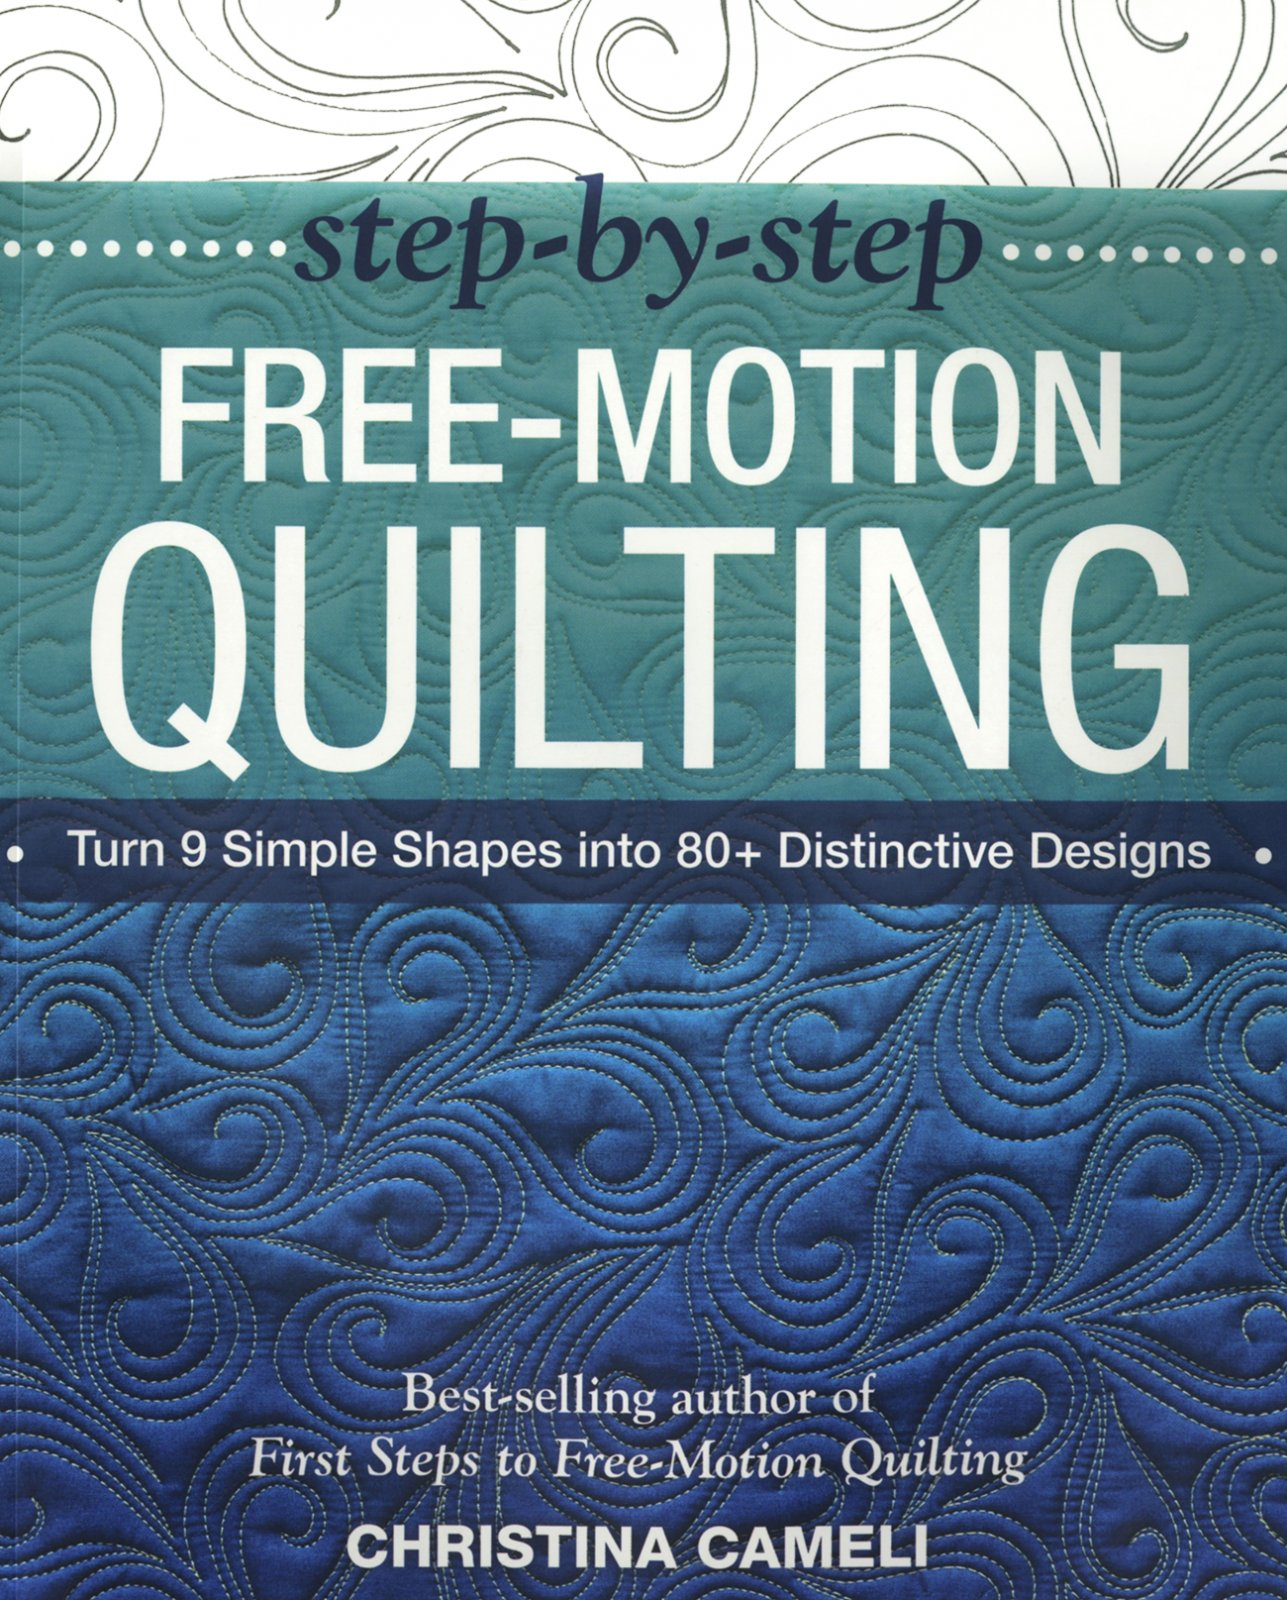 Step-by-Step Free-Motion Quilting - 11099